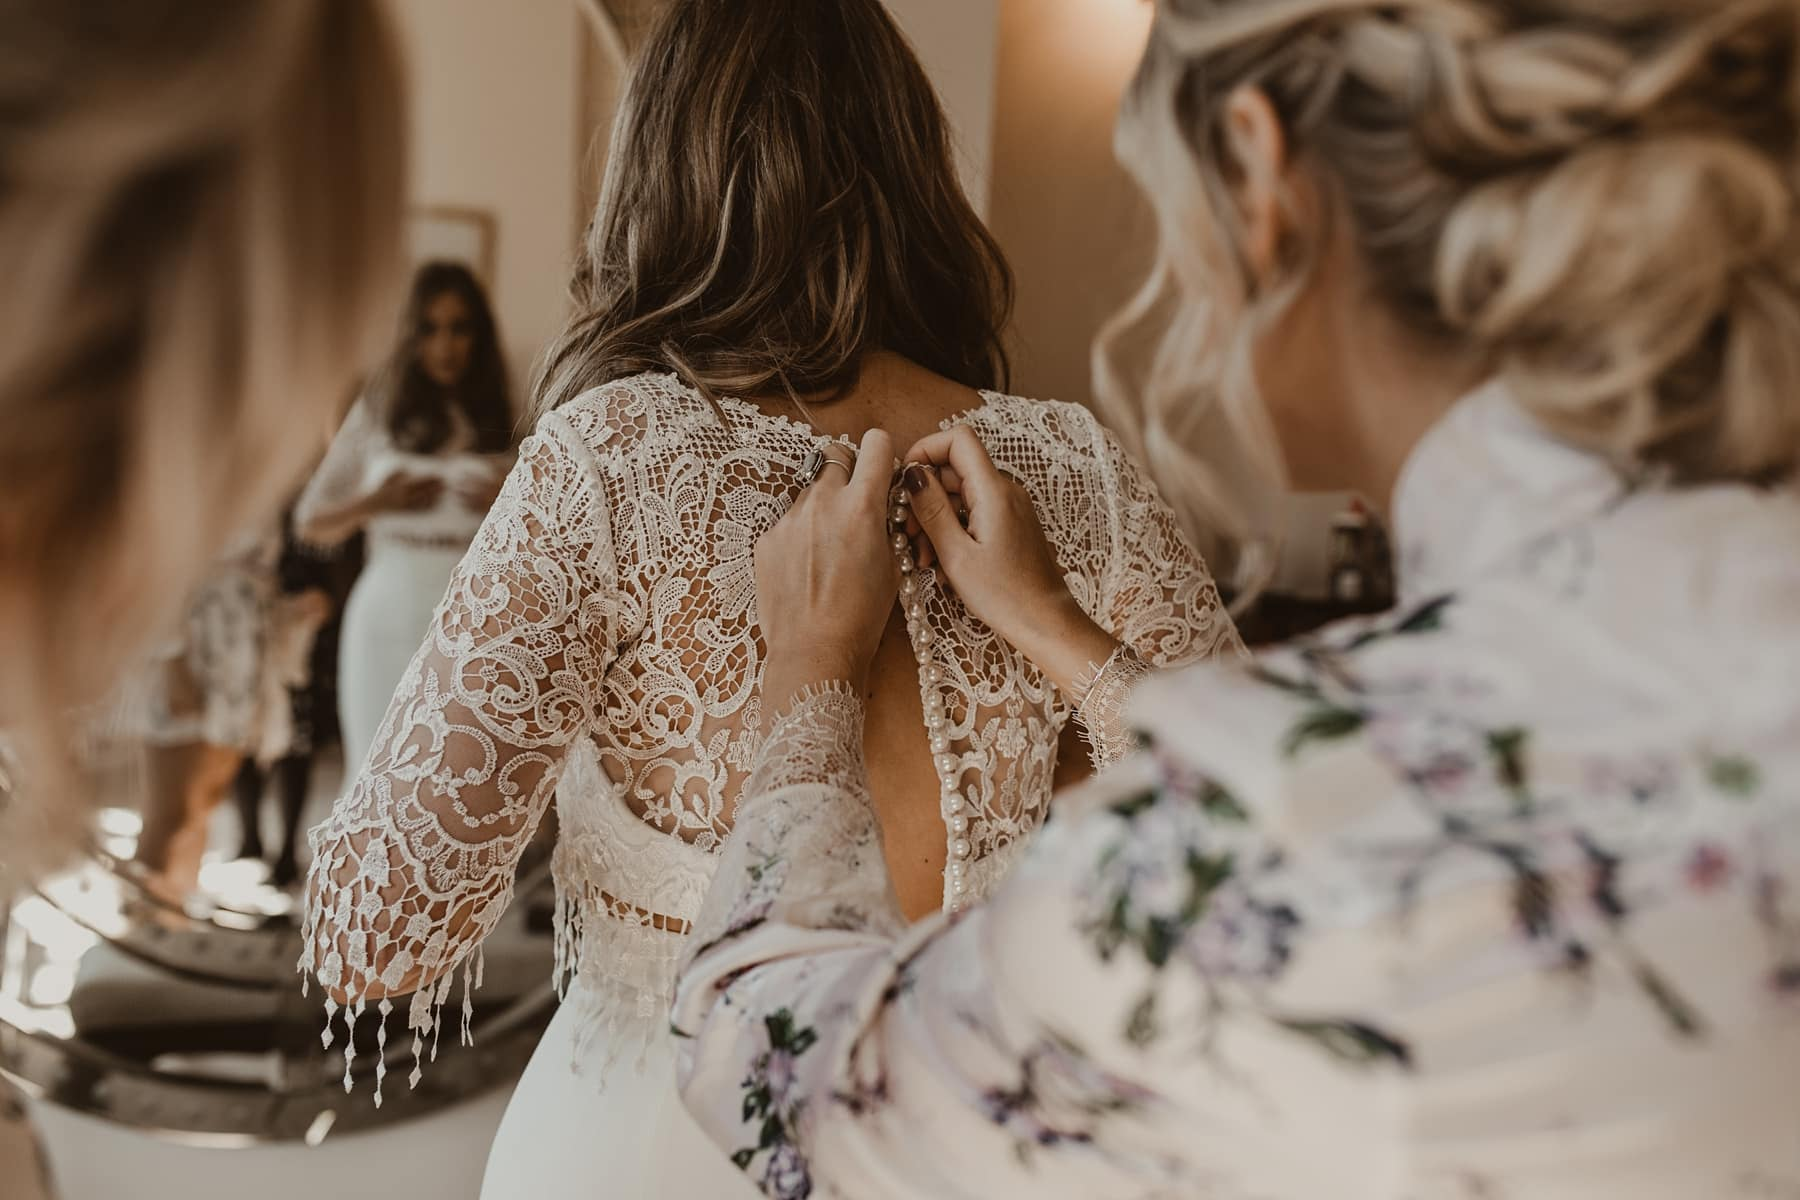 Bridesmaid doing up lace wedding dress